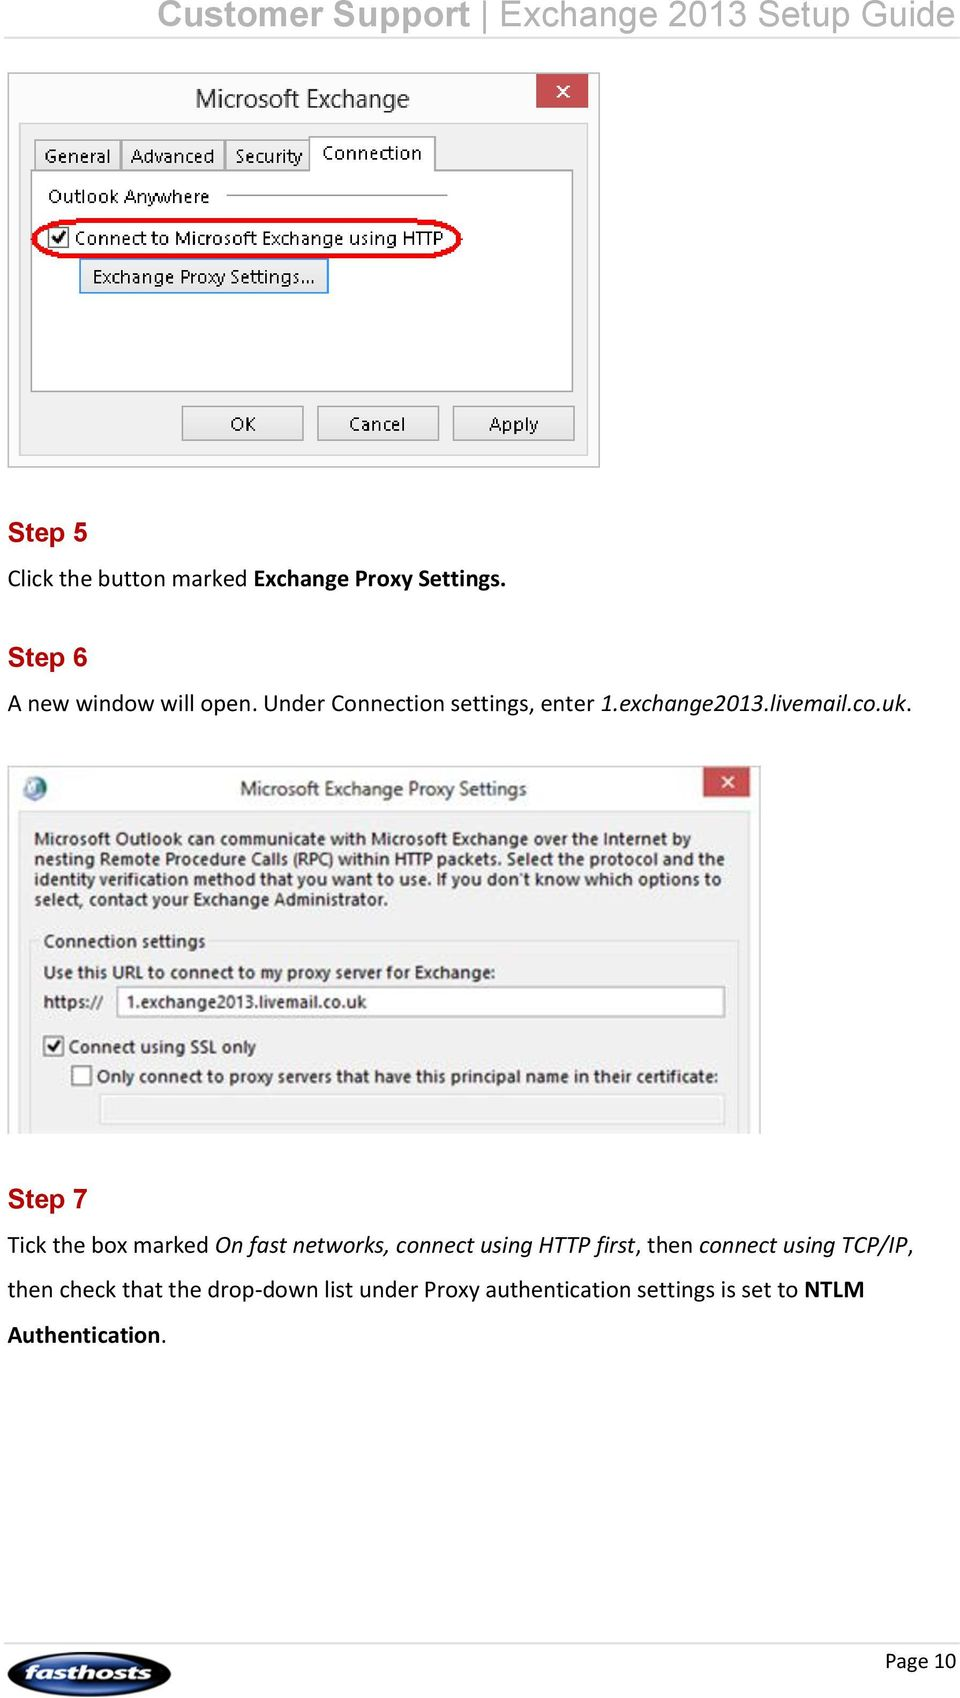 Step 7 Tick the box marked On fast networks, connect using HTTP first, then connect using